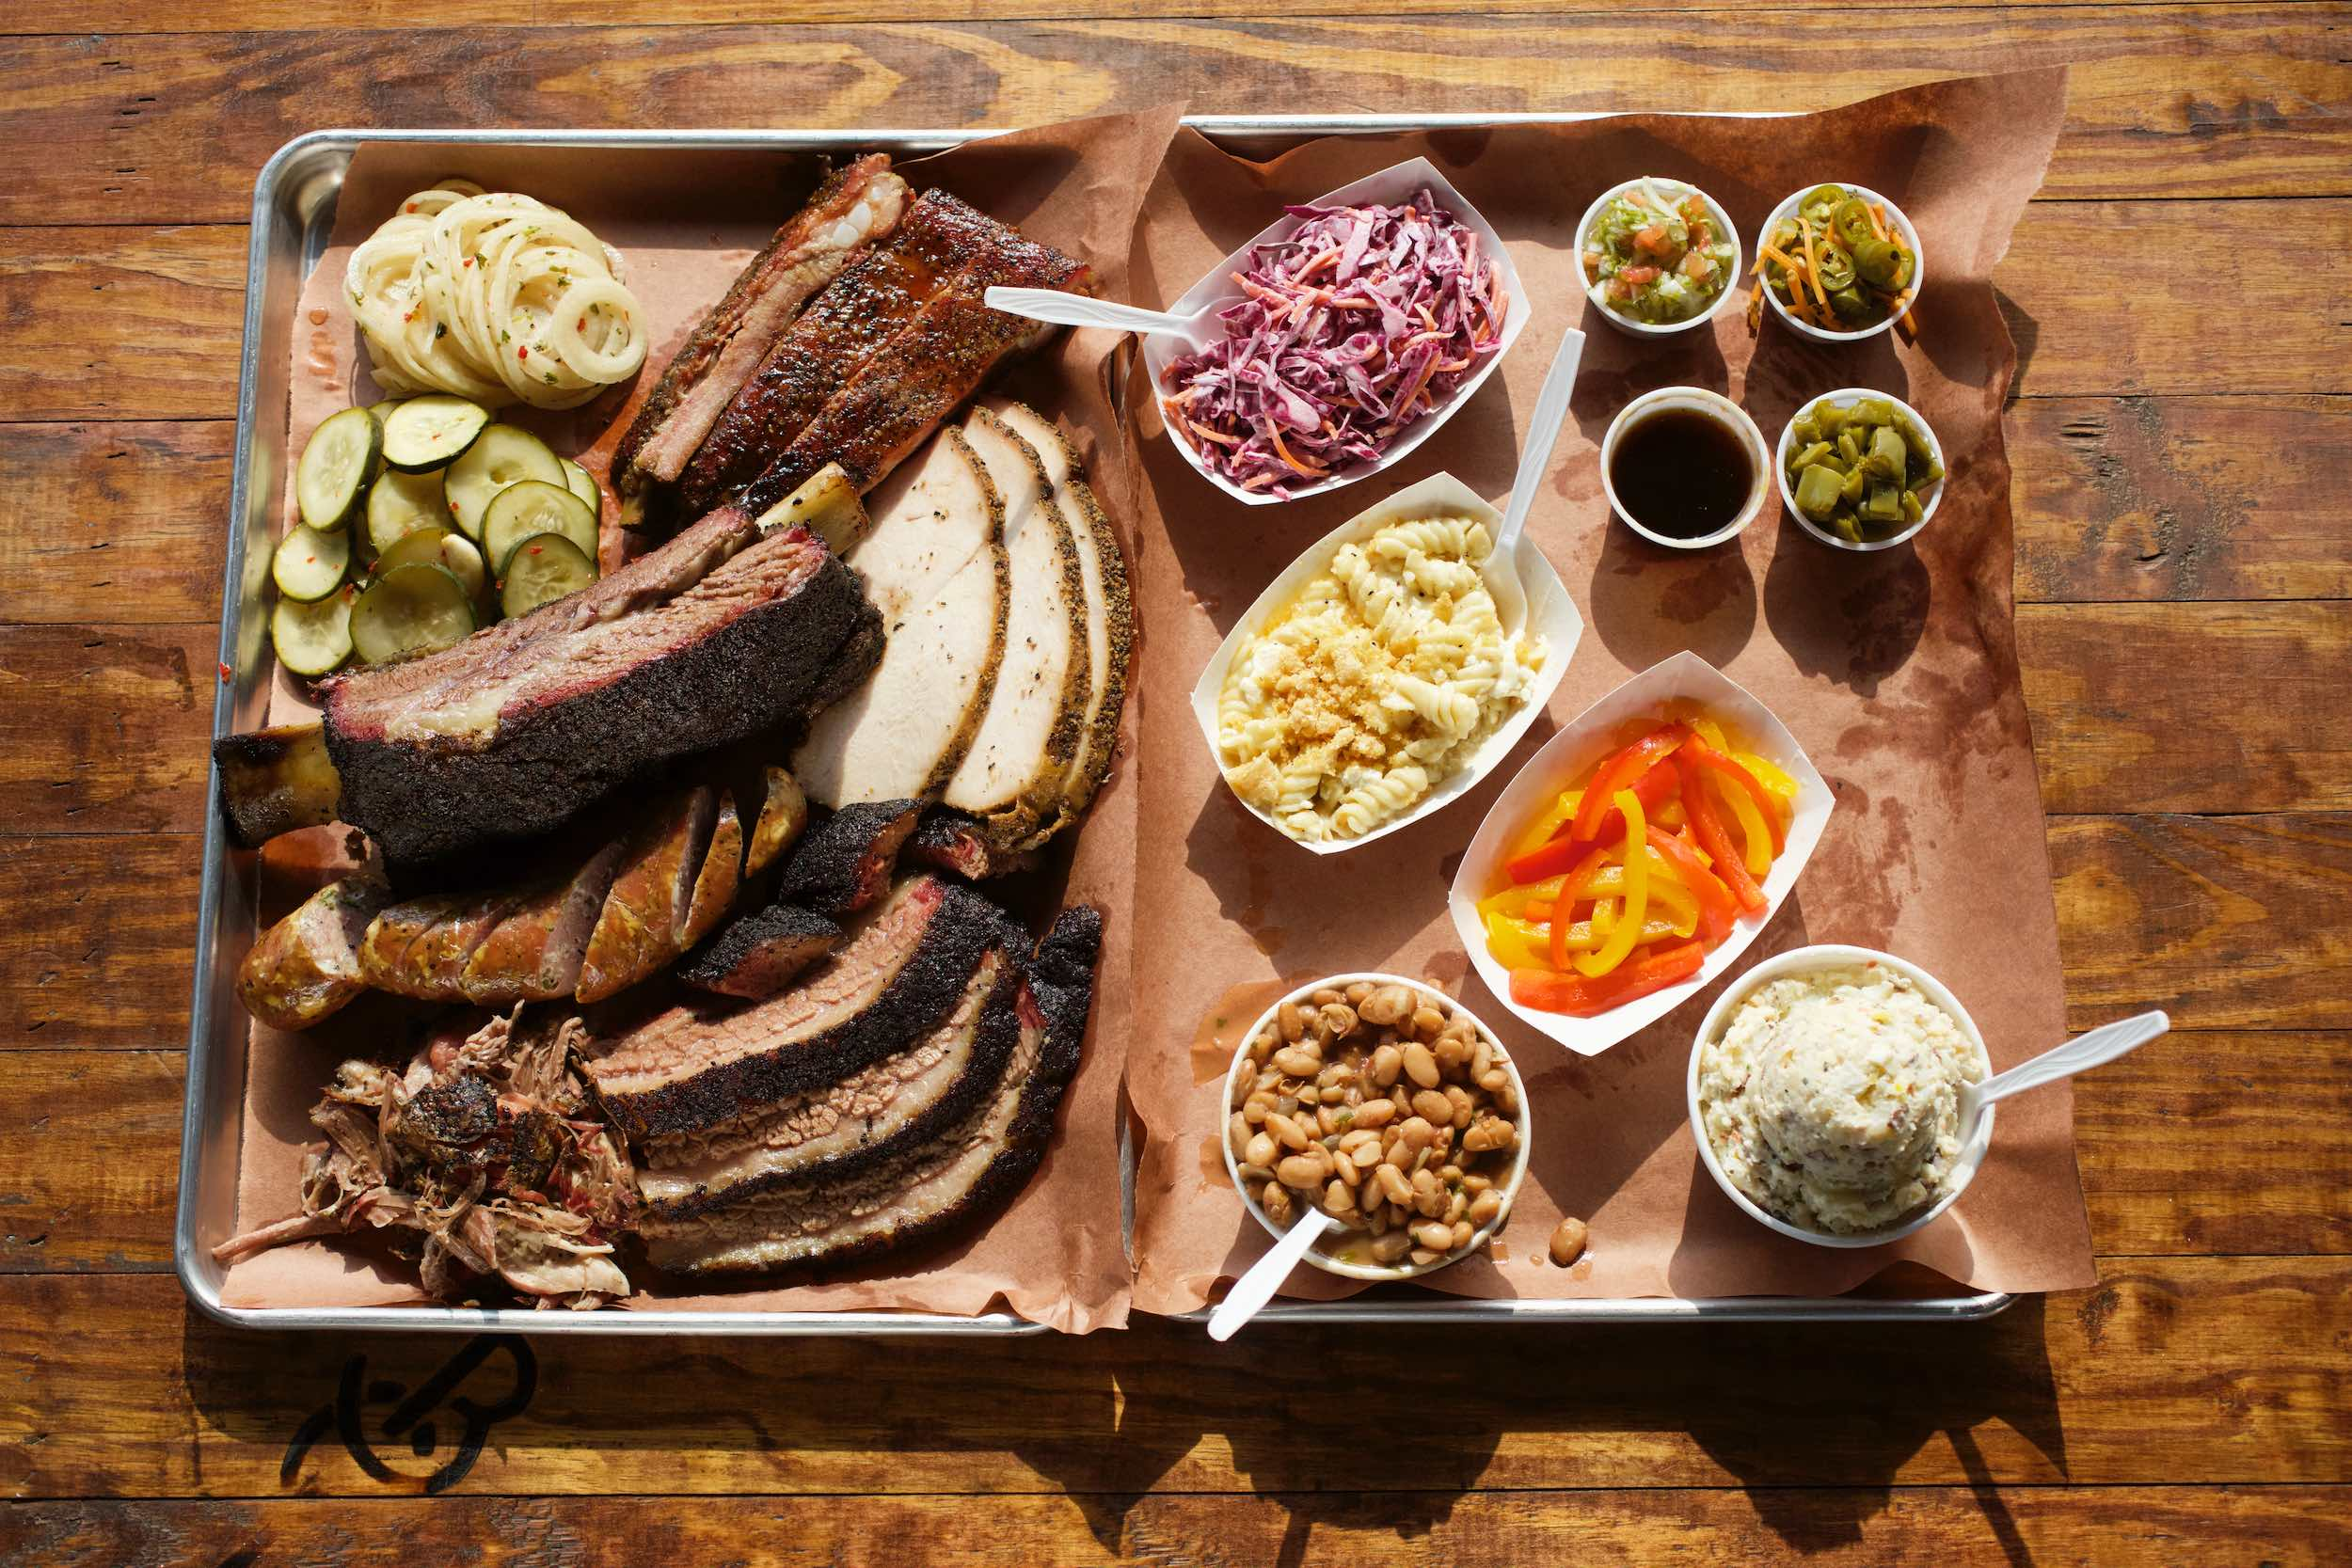 Jody Horton Photography - Barbecue spread on parchment on wood table.